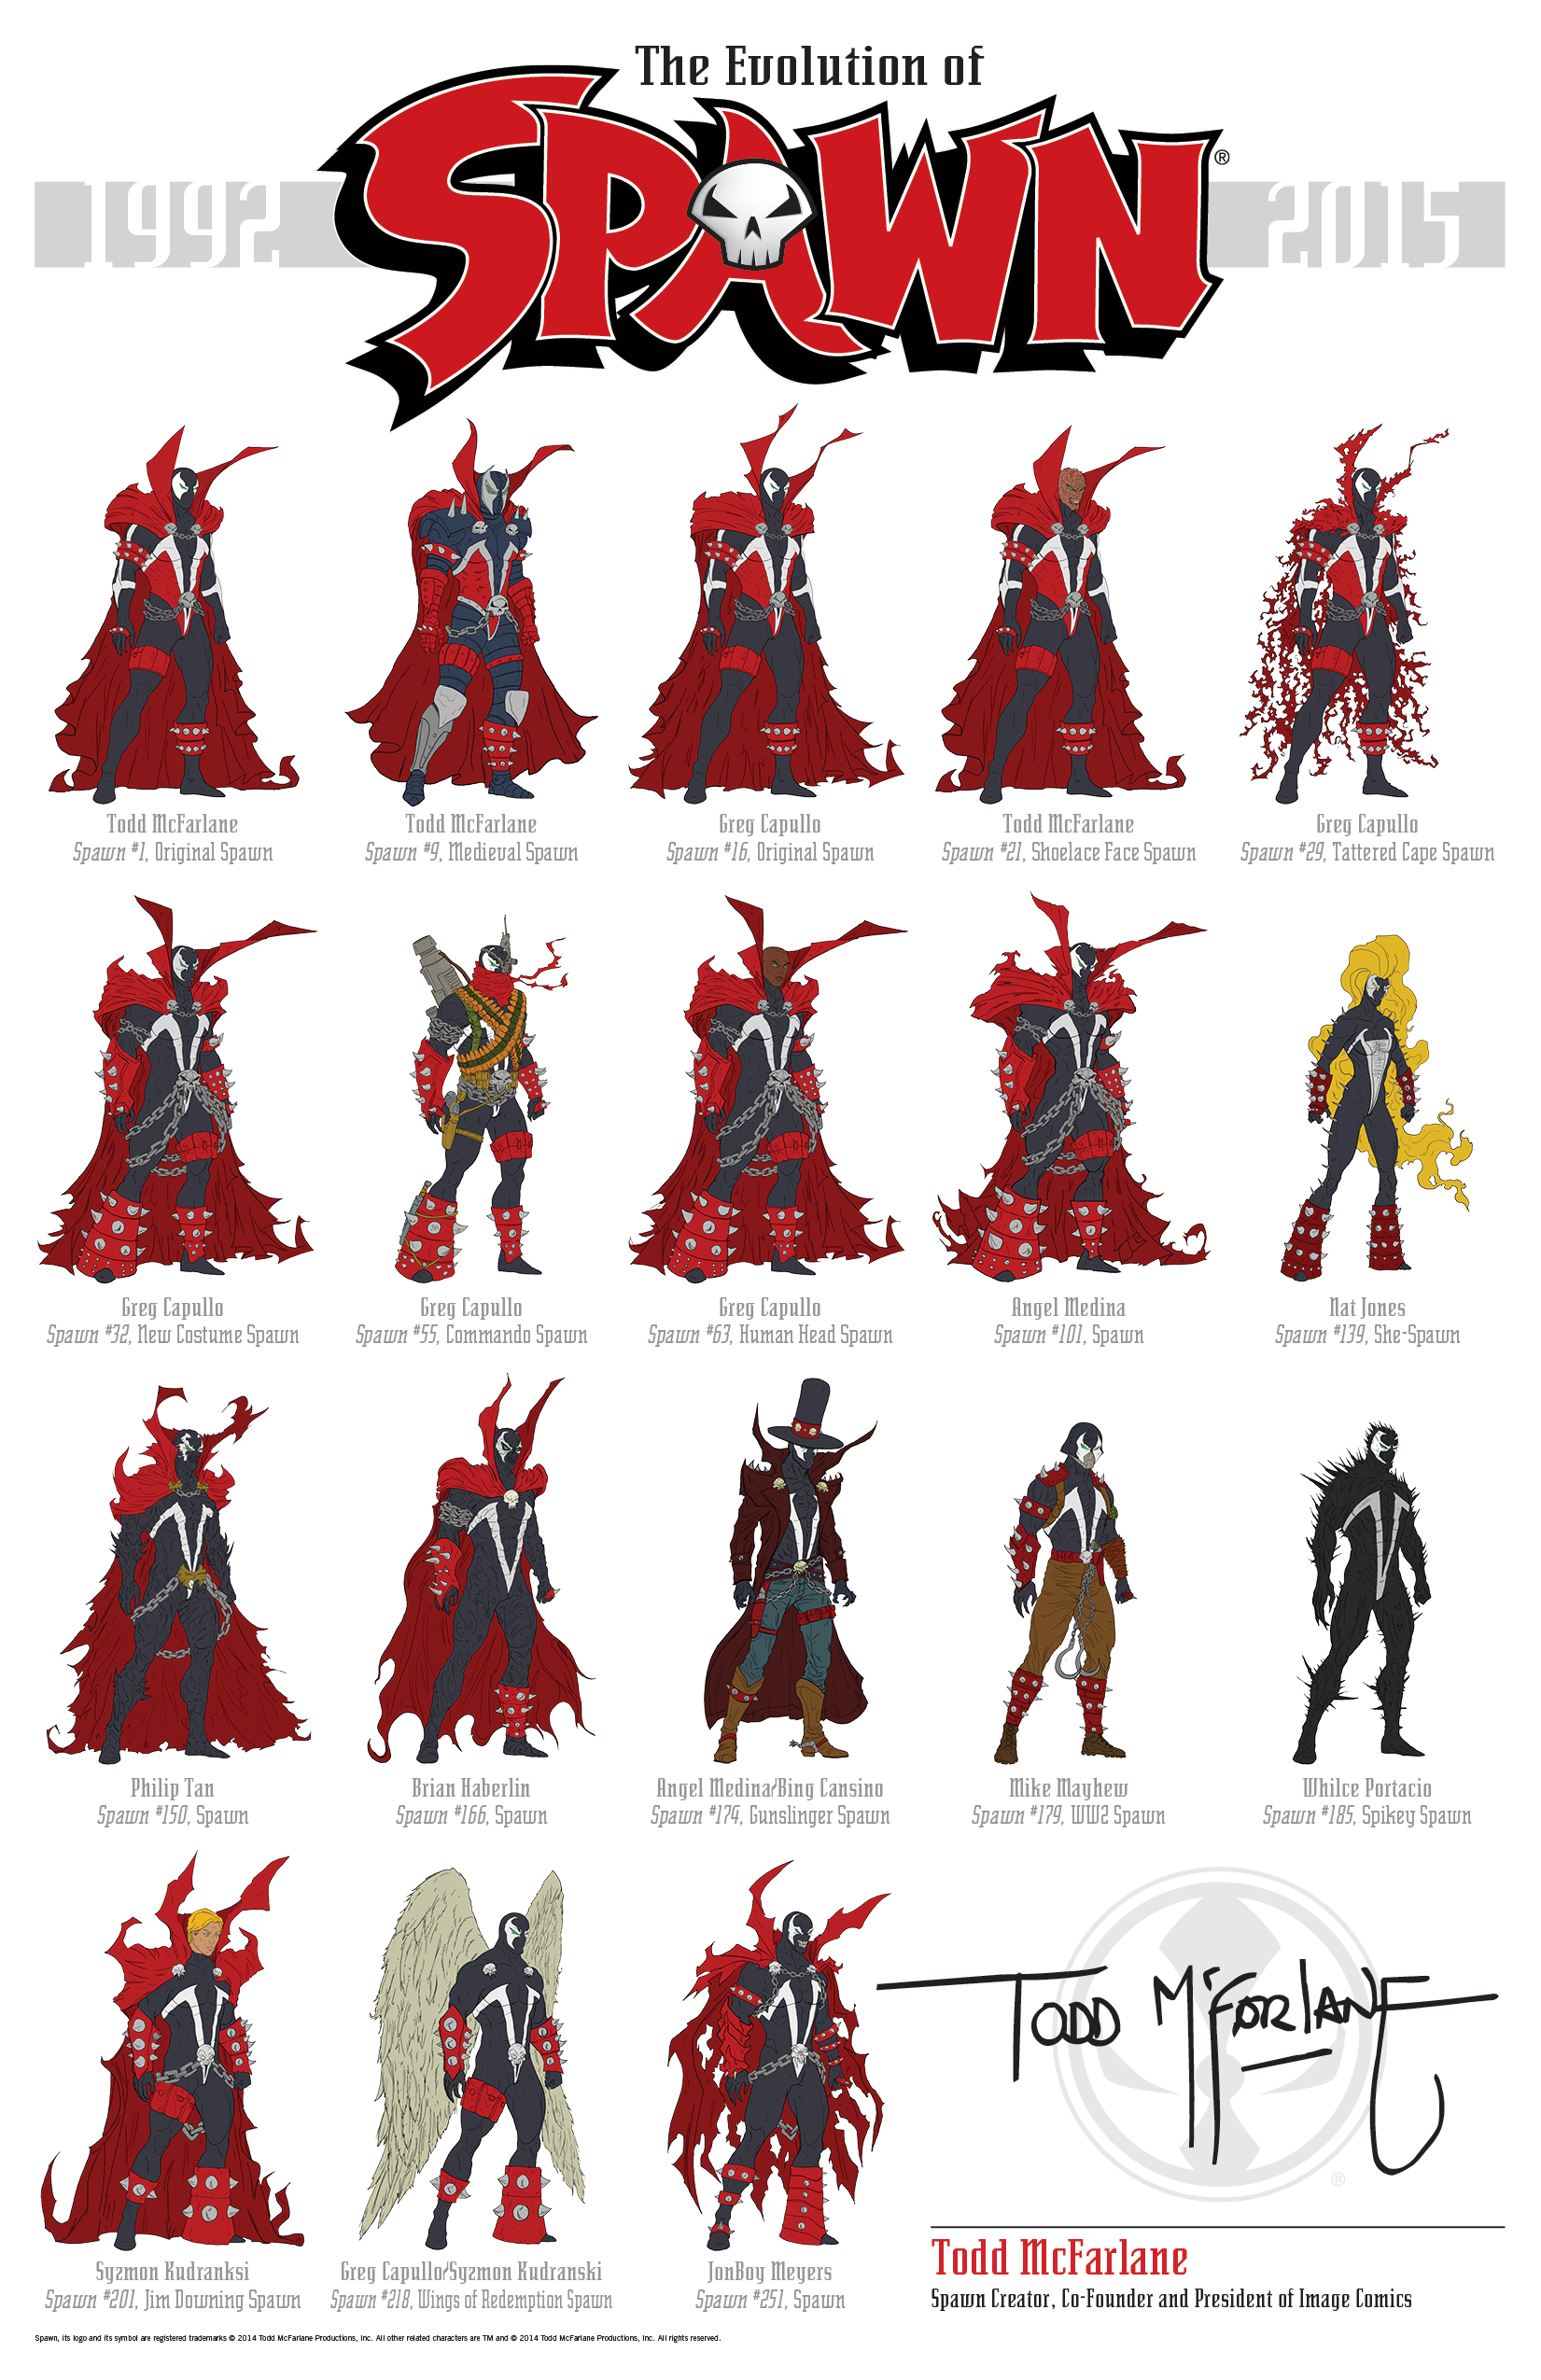 The Visual Evolution of Spawn